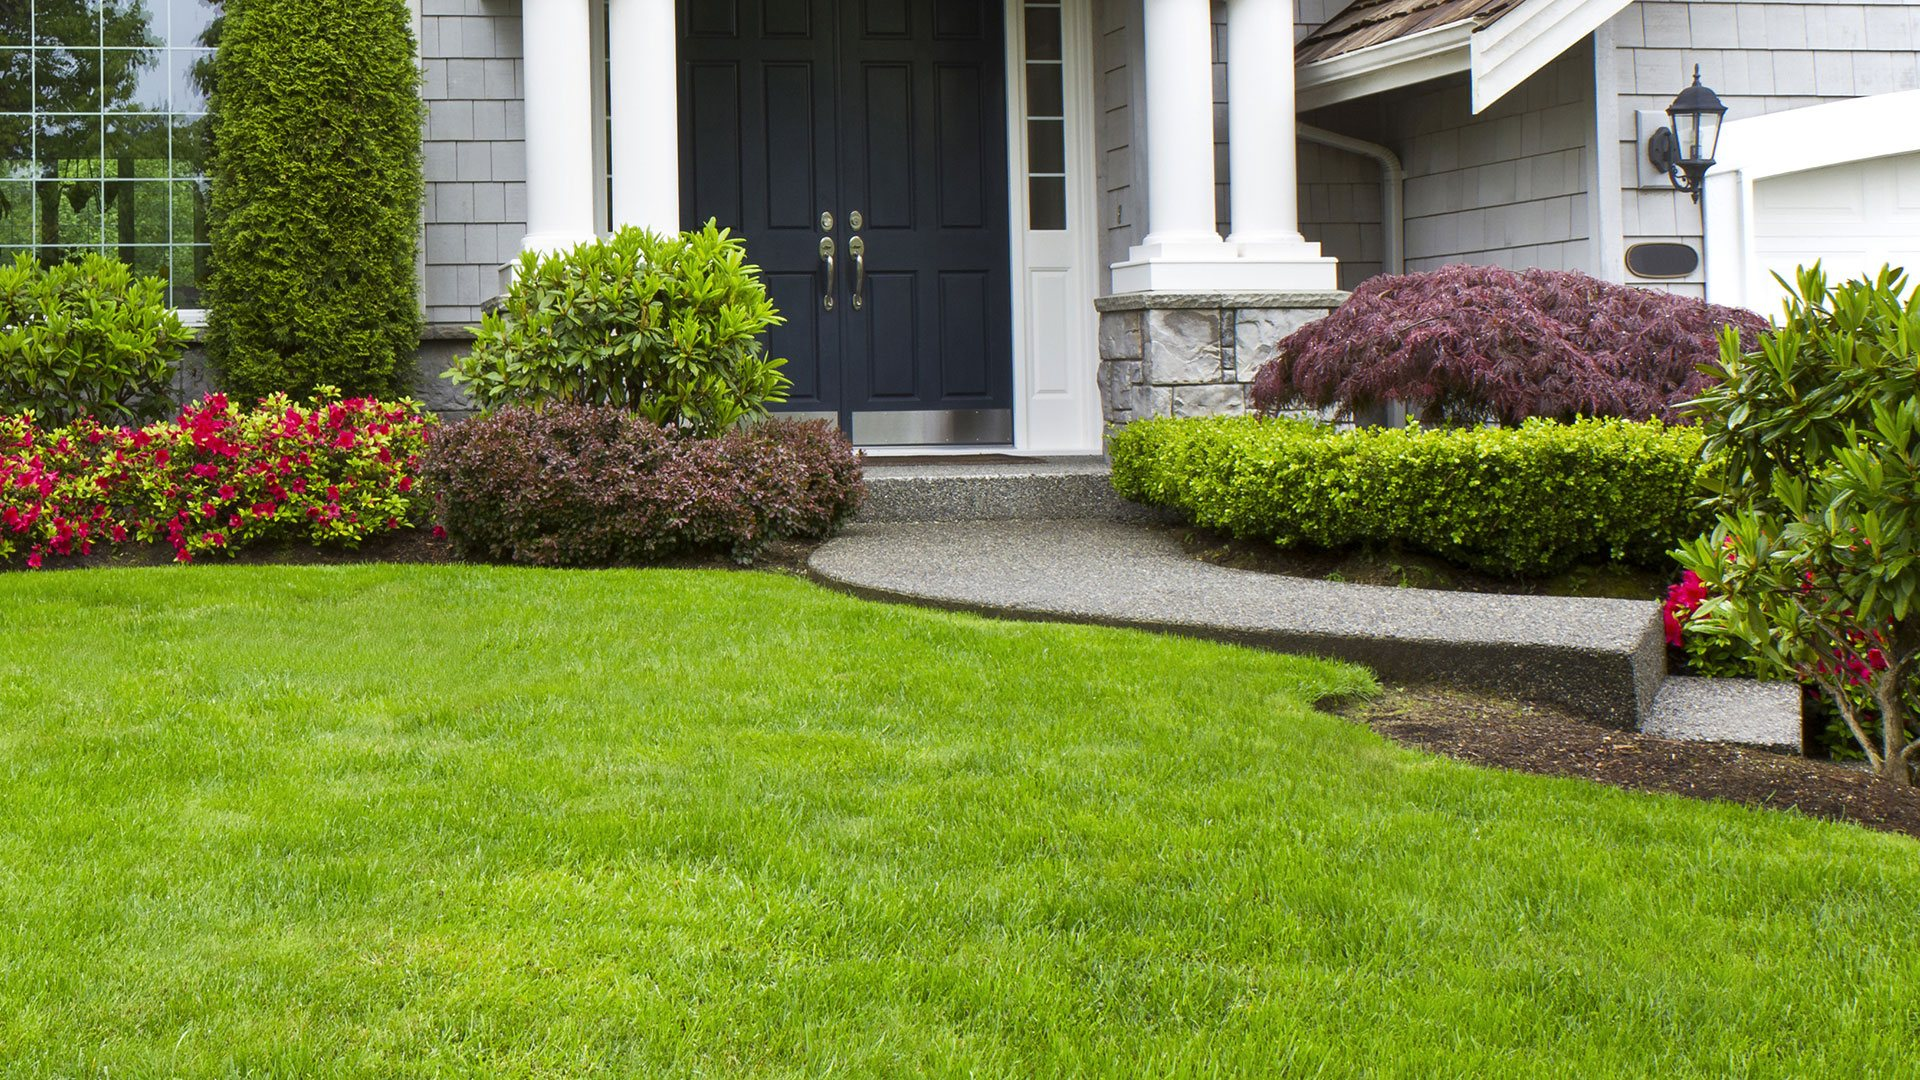 Home pittsburgh garden design lawn maintenance and for Lawn and garden services